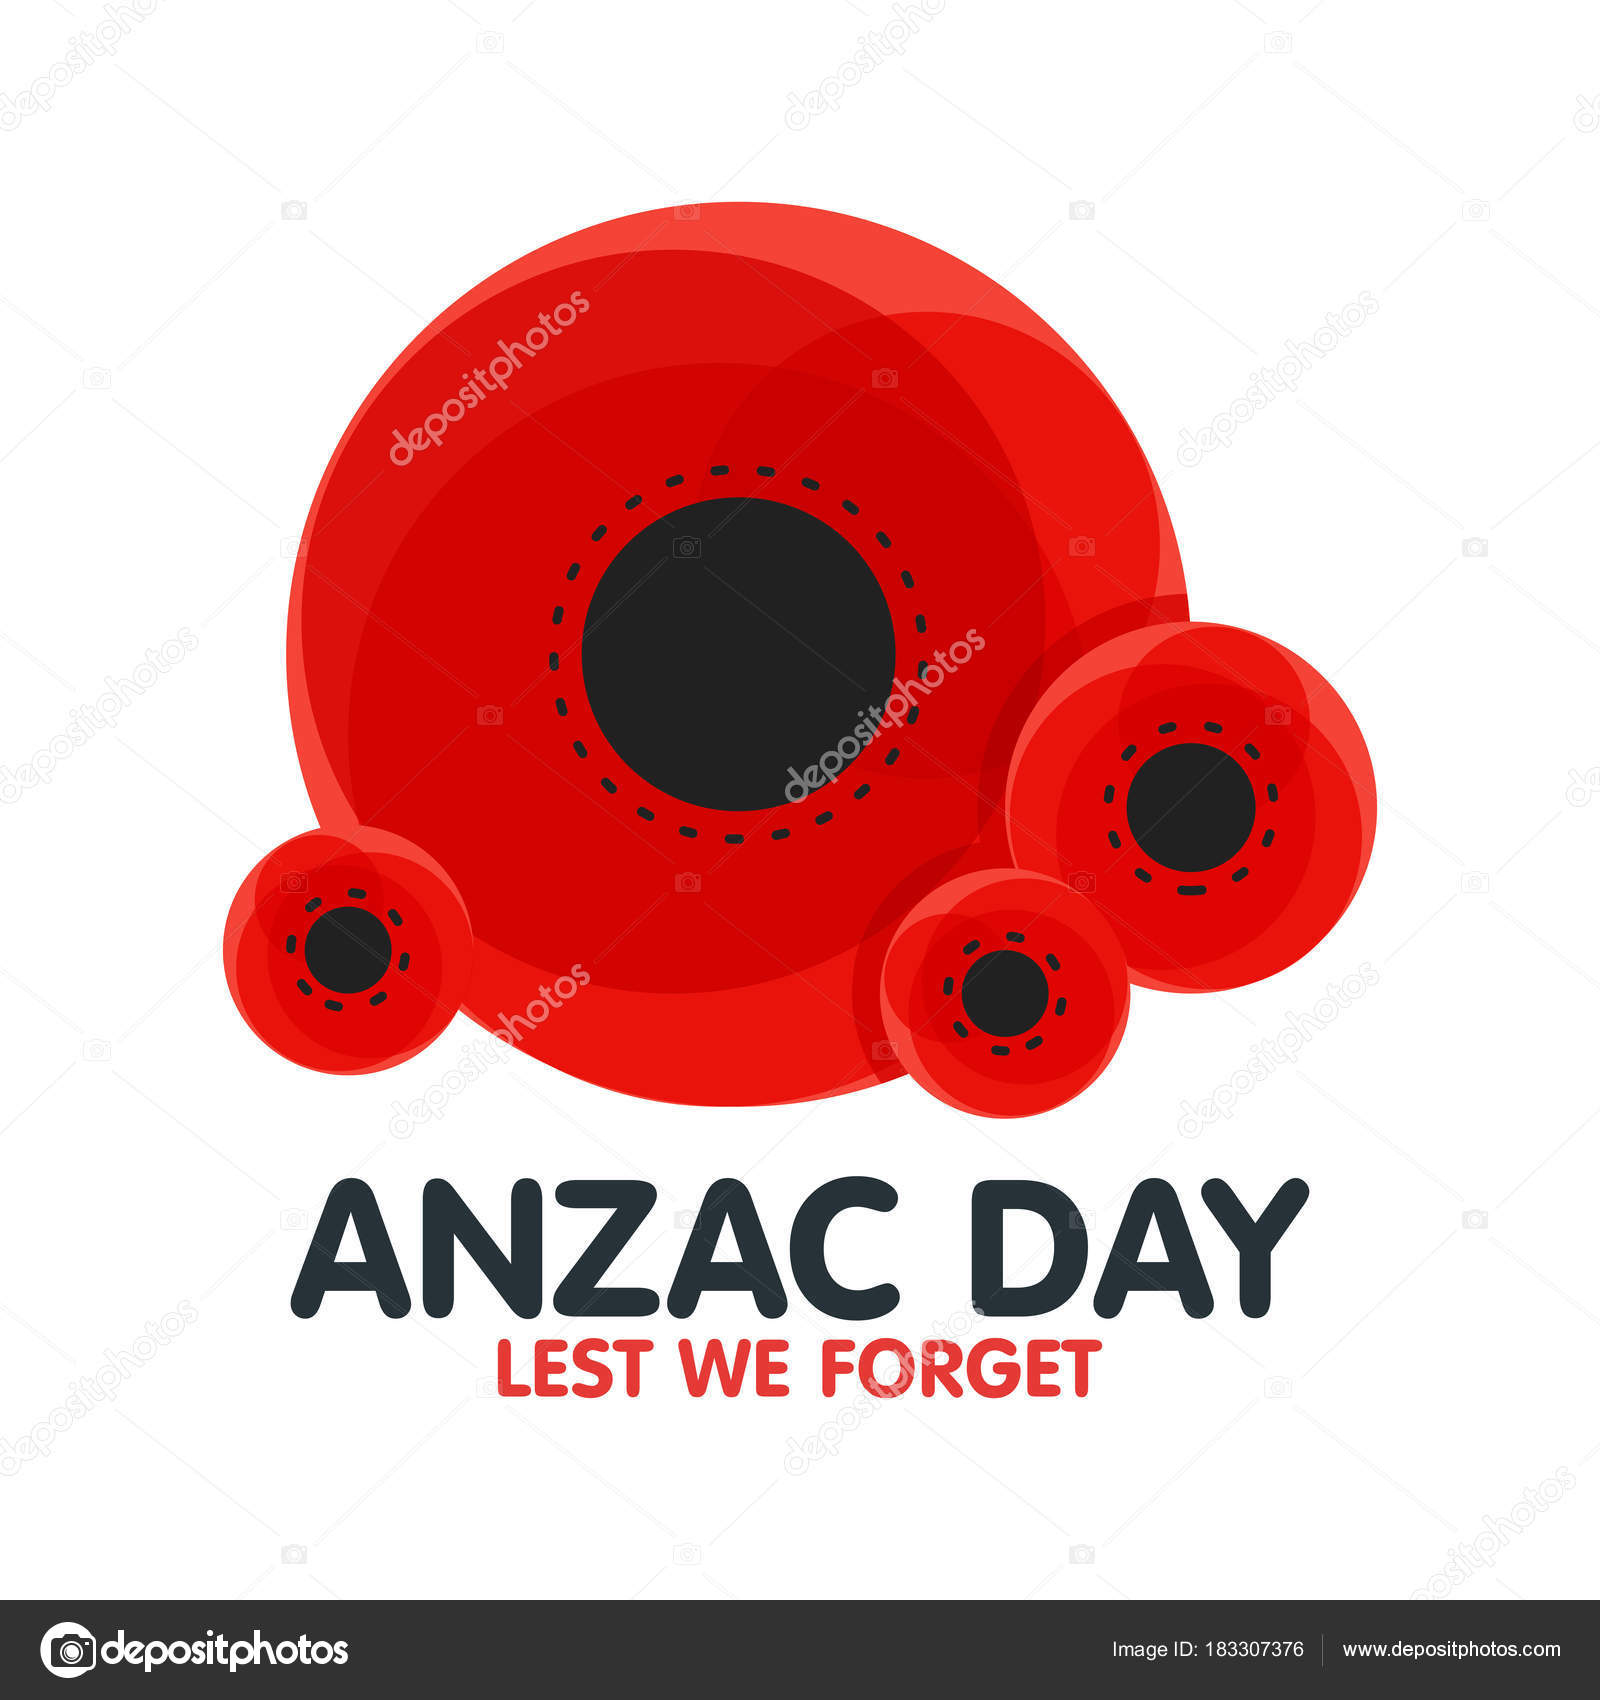 Bright poppy flower remembrance day symbol anzac day in bright poppy flower remembrance day symbol anzac day in australia lest we forget buycottarizona